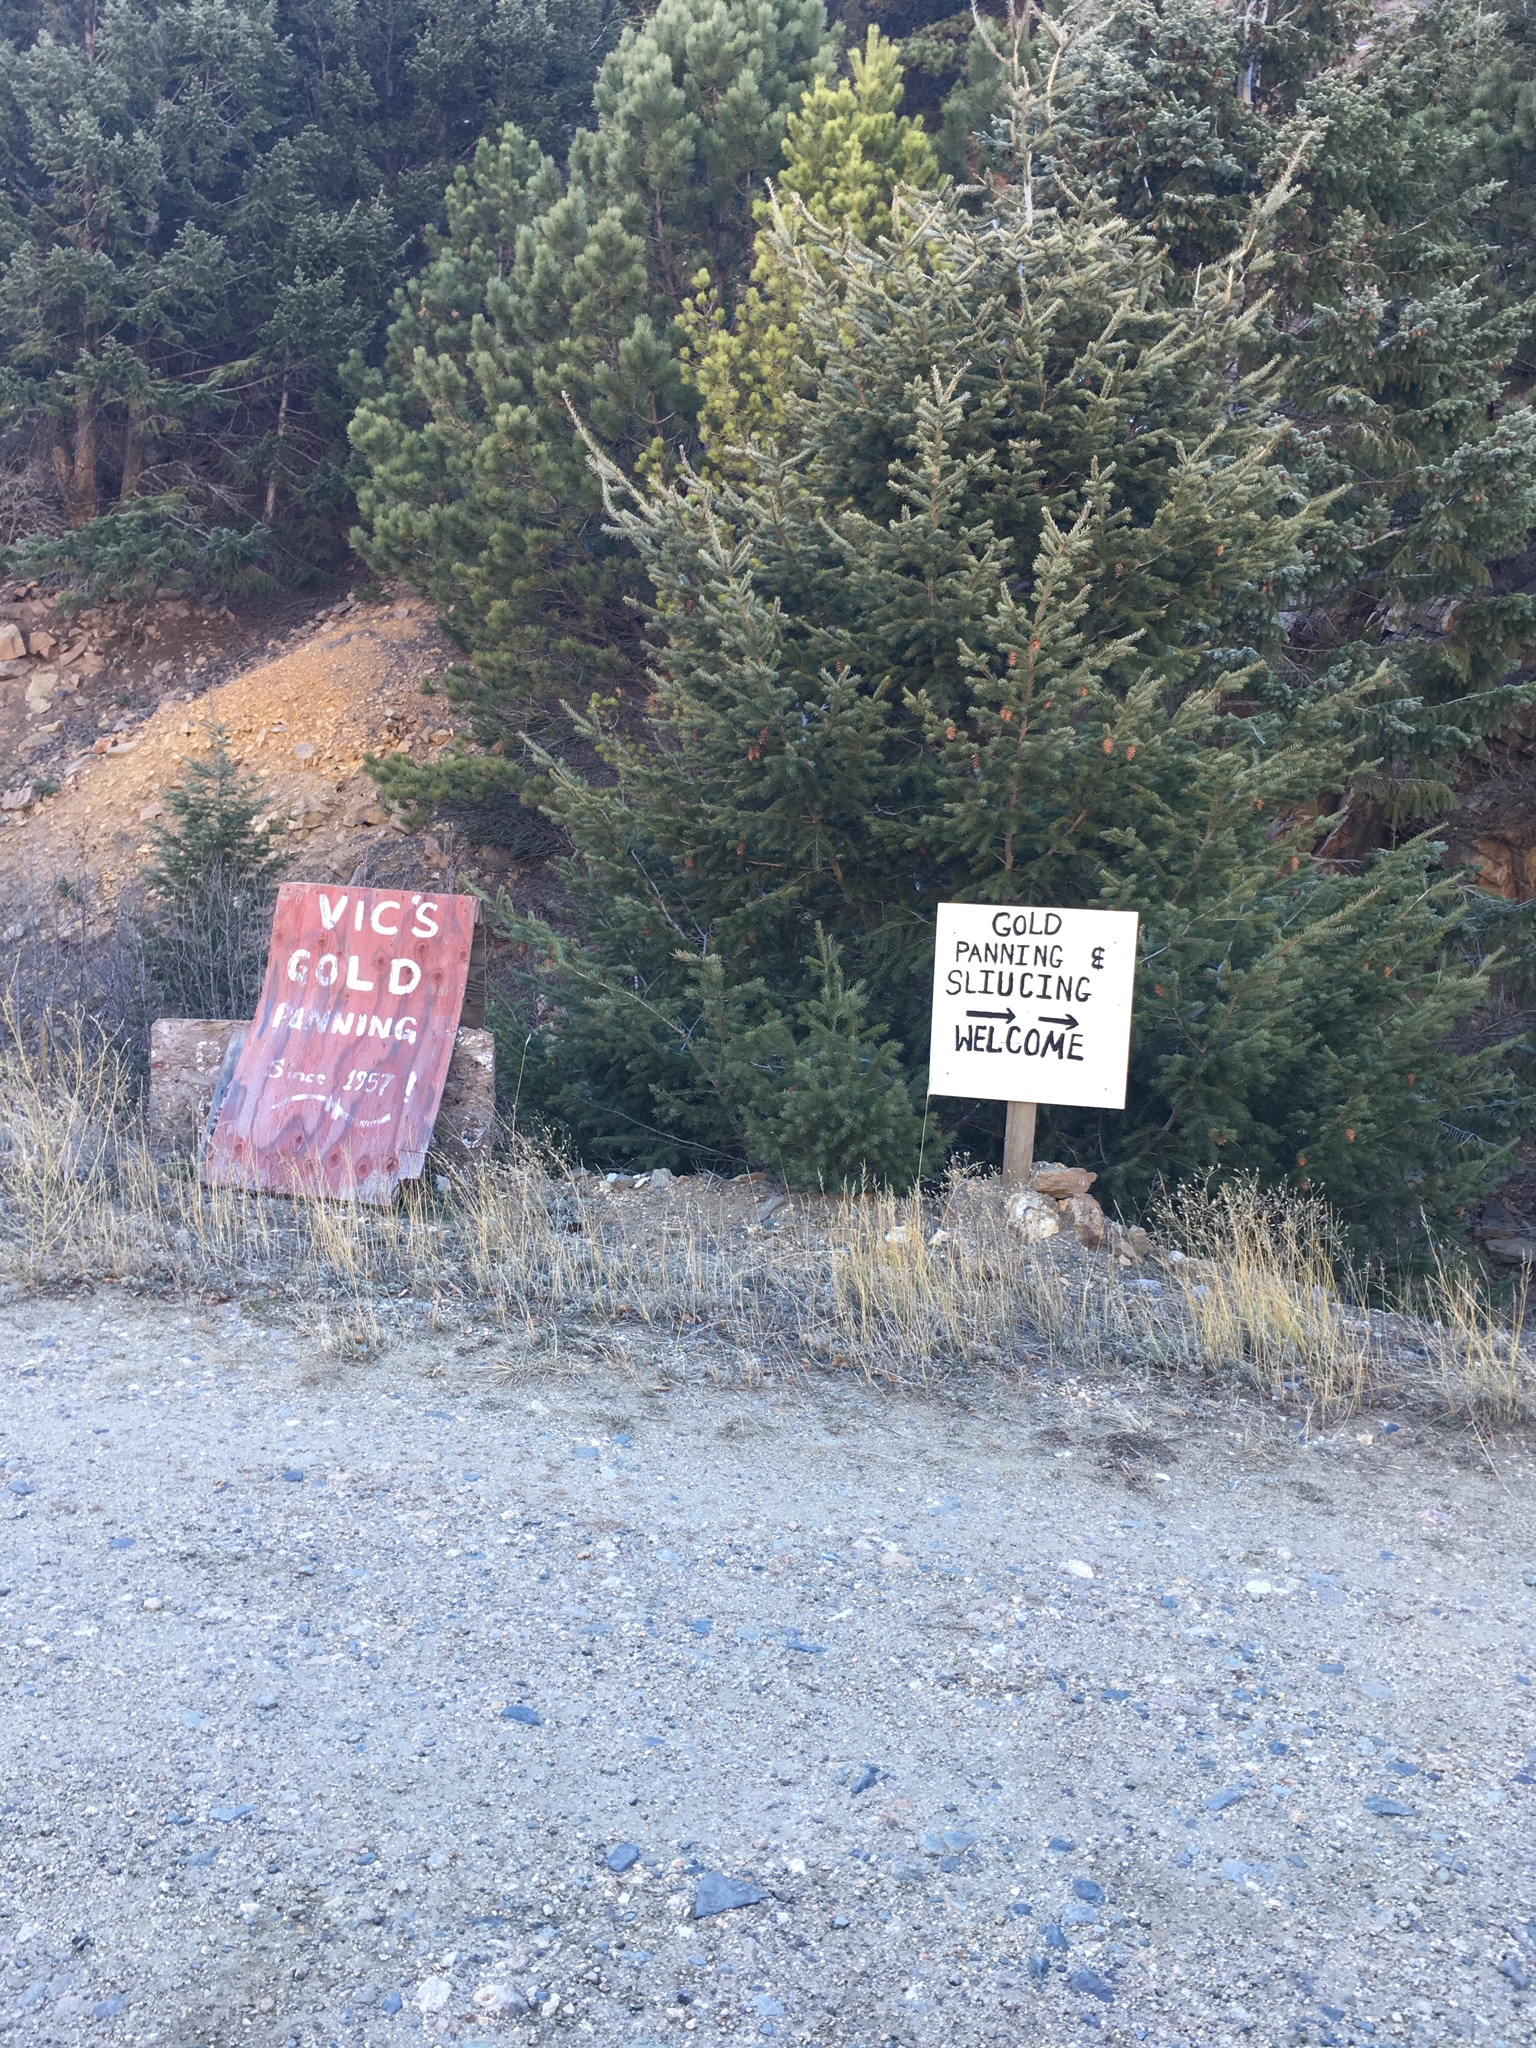 Signs at gold panning site